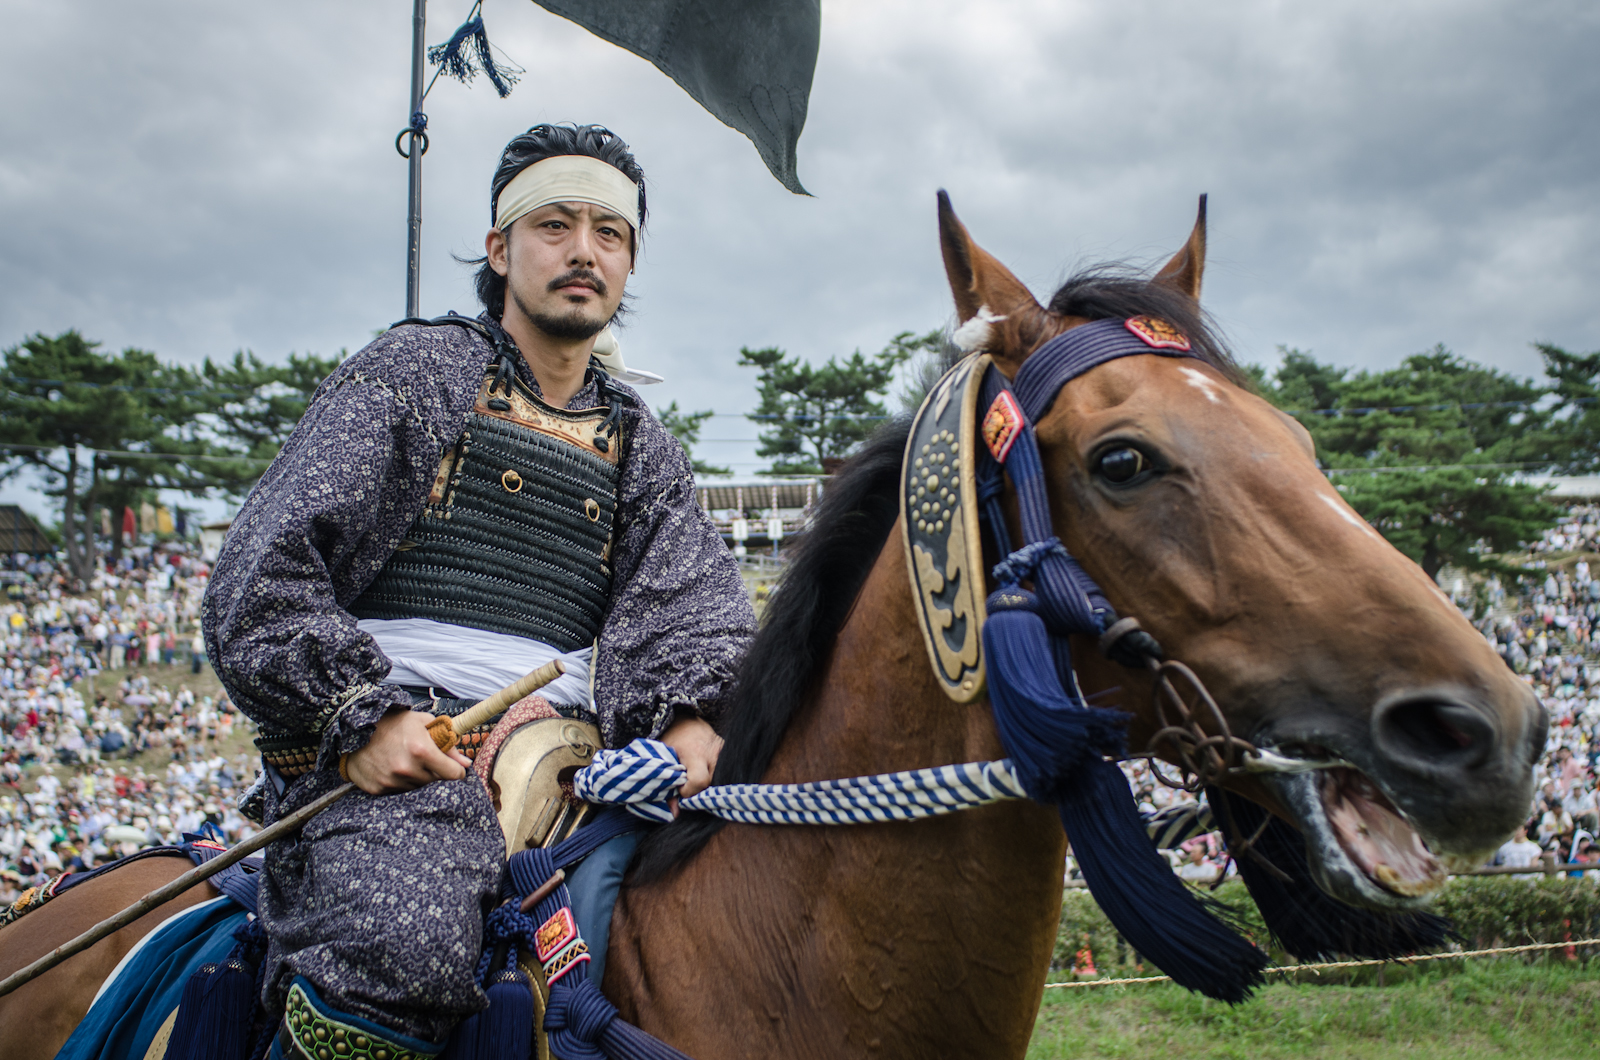 A Samurai warrior at the  Soma Nomaoi horse festival held near the Fukushima Exclusion Zone in Japan